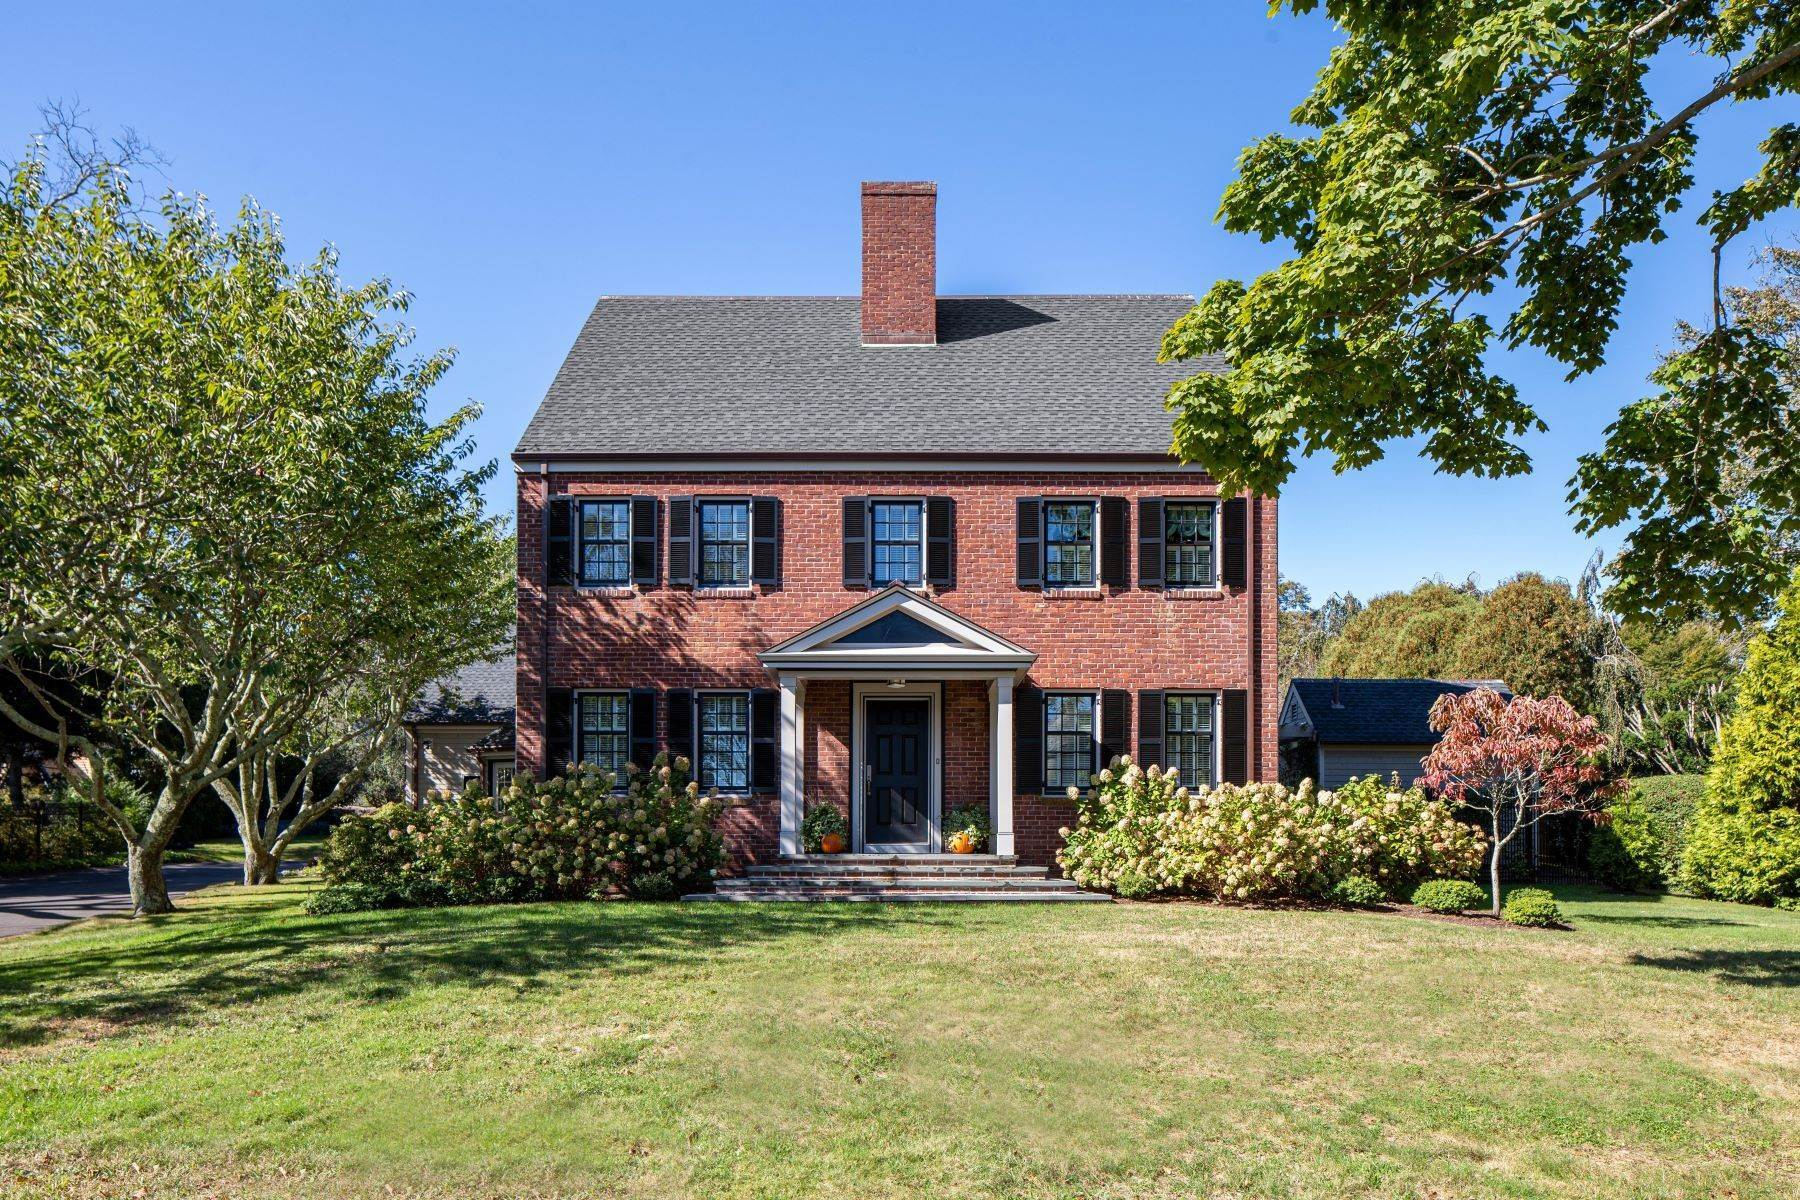 Single Family Homes for Sale at Masterfully Renovated Brick Colonial 357 Gibbs Avenue Newport, Rhode Island 02840 United States